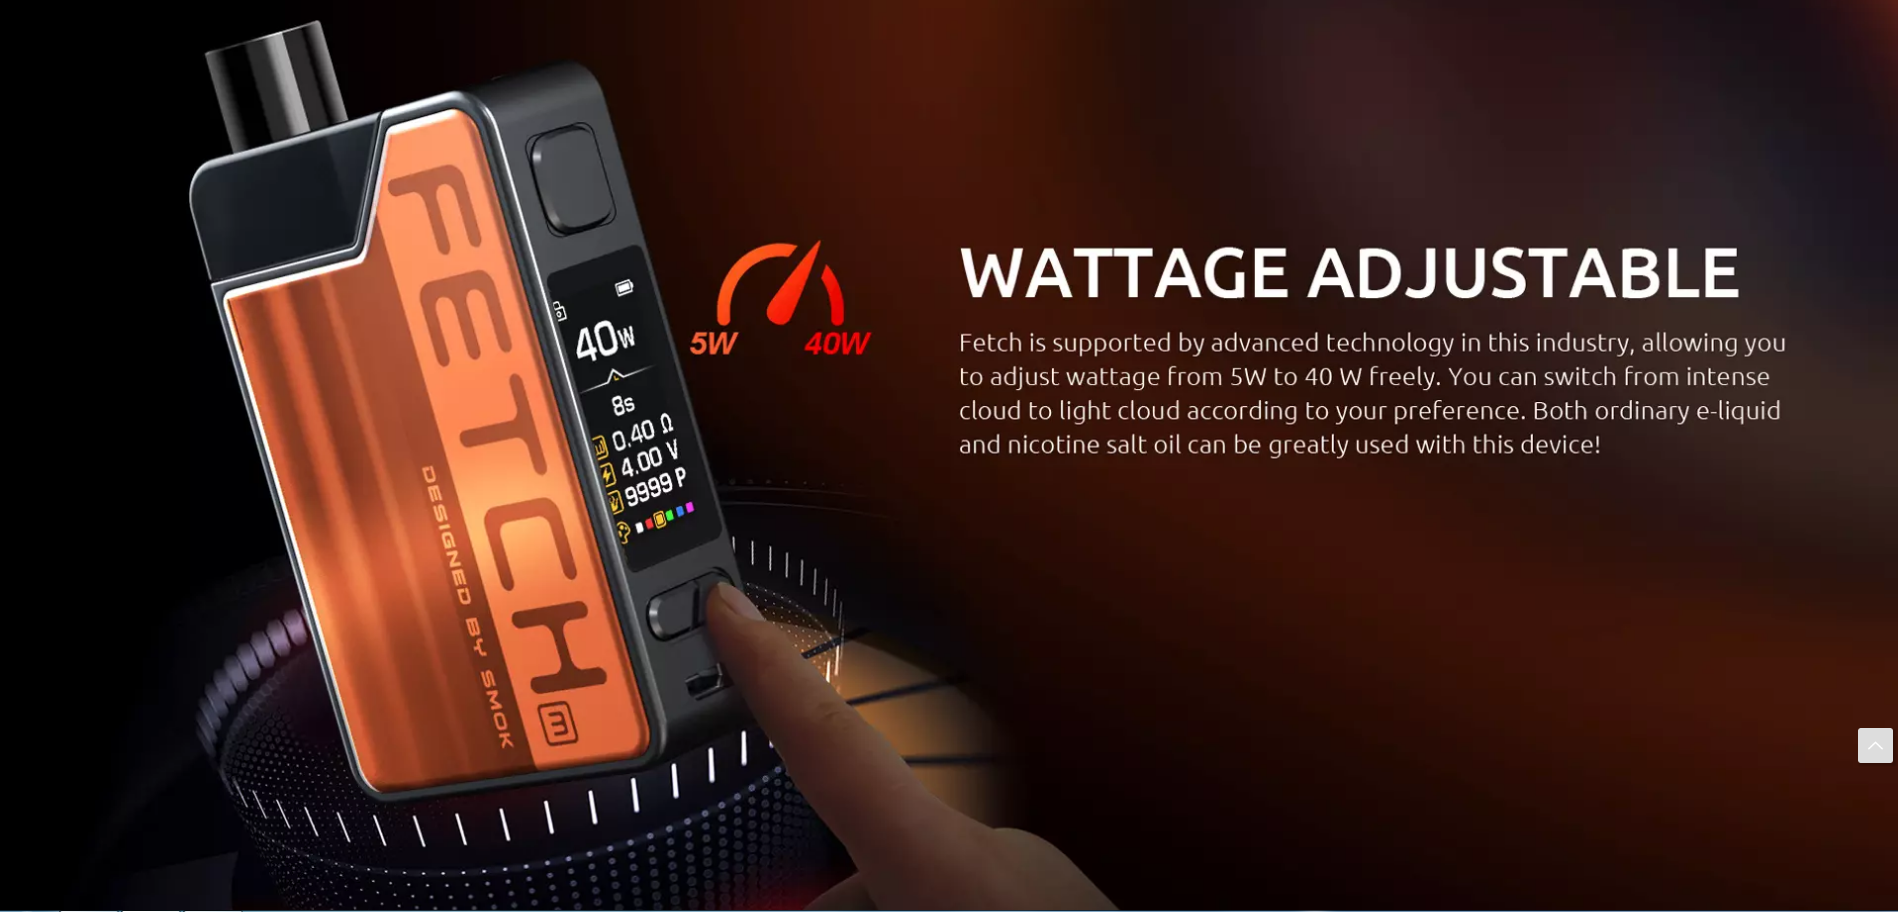 WATTAGE ADJUSTABEL